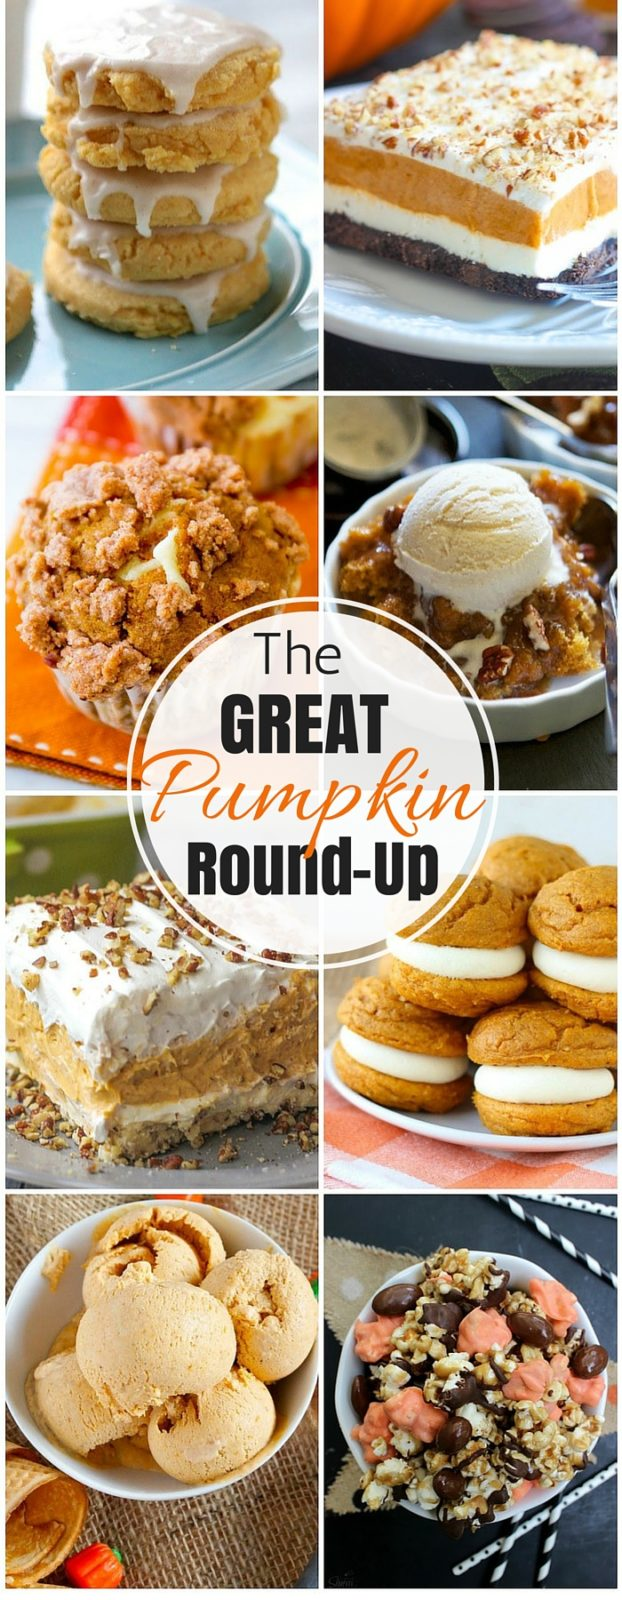 The Great Pumpkin Roundup